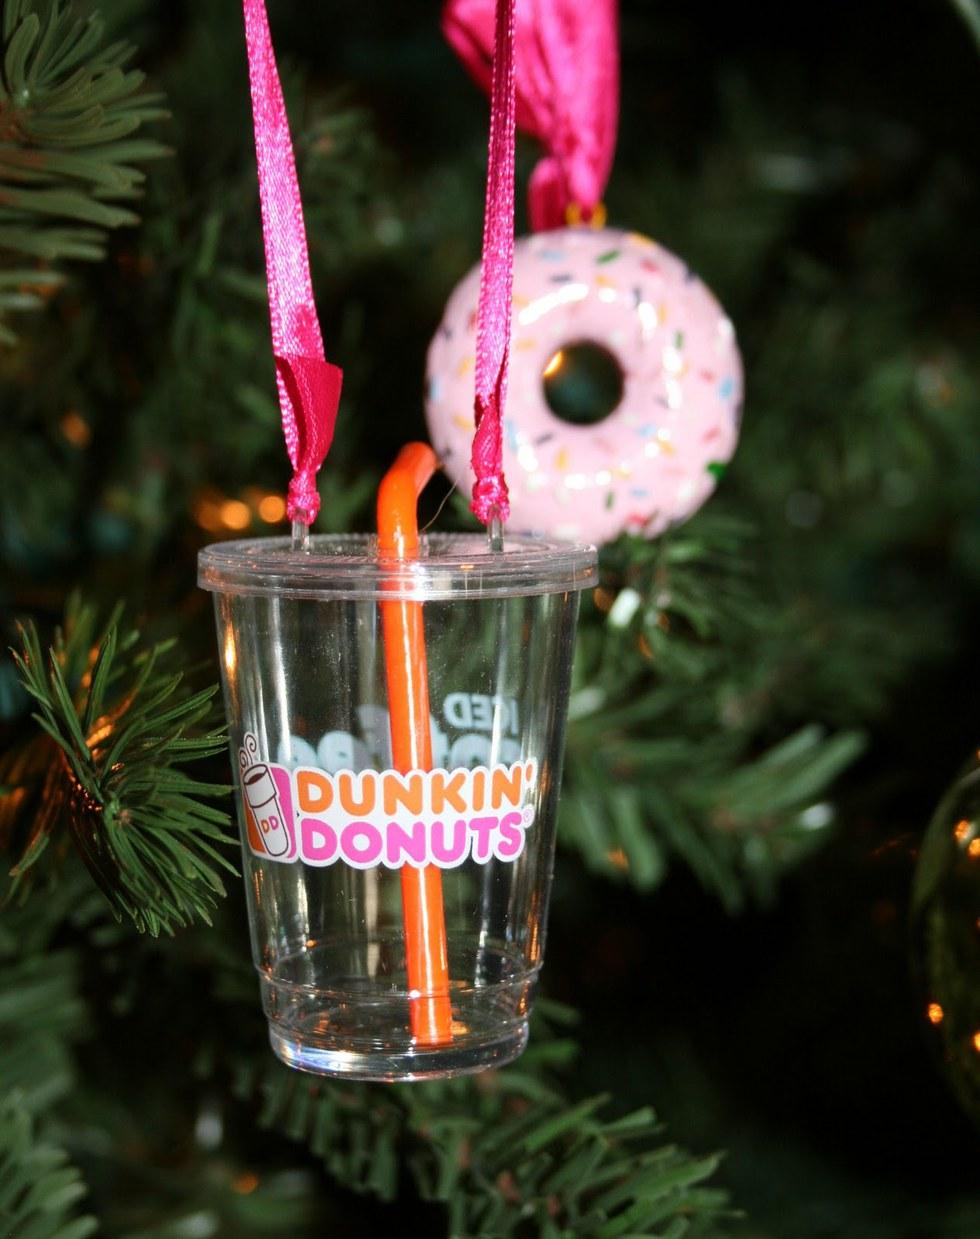 And Your Christmas Tree Is Basically Just Decorated With Dunkin' Ornaments